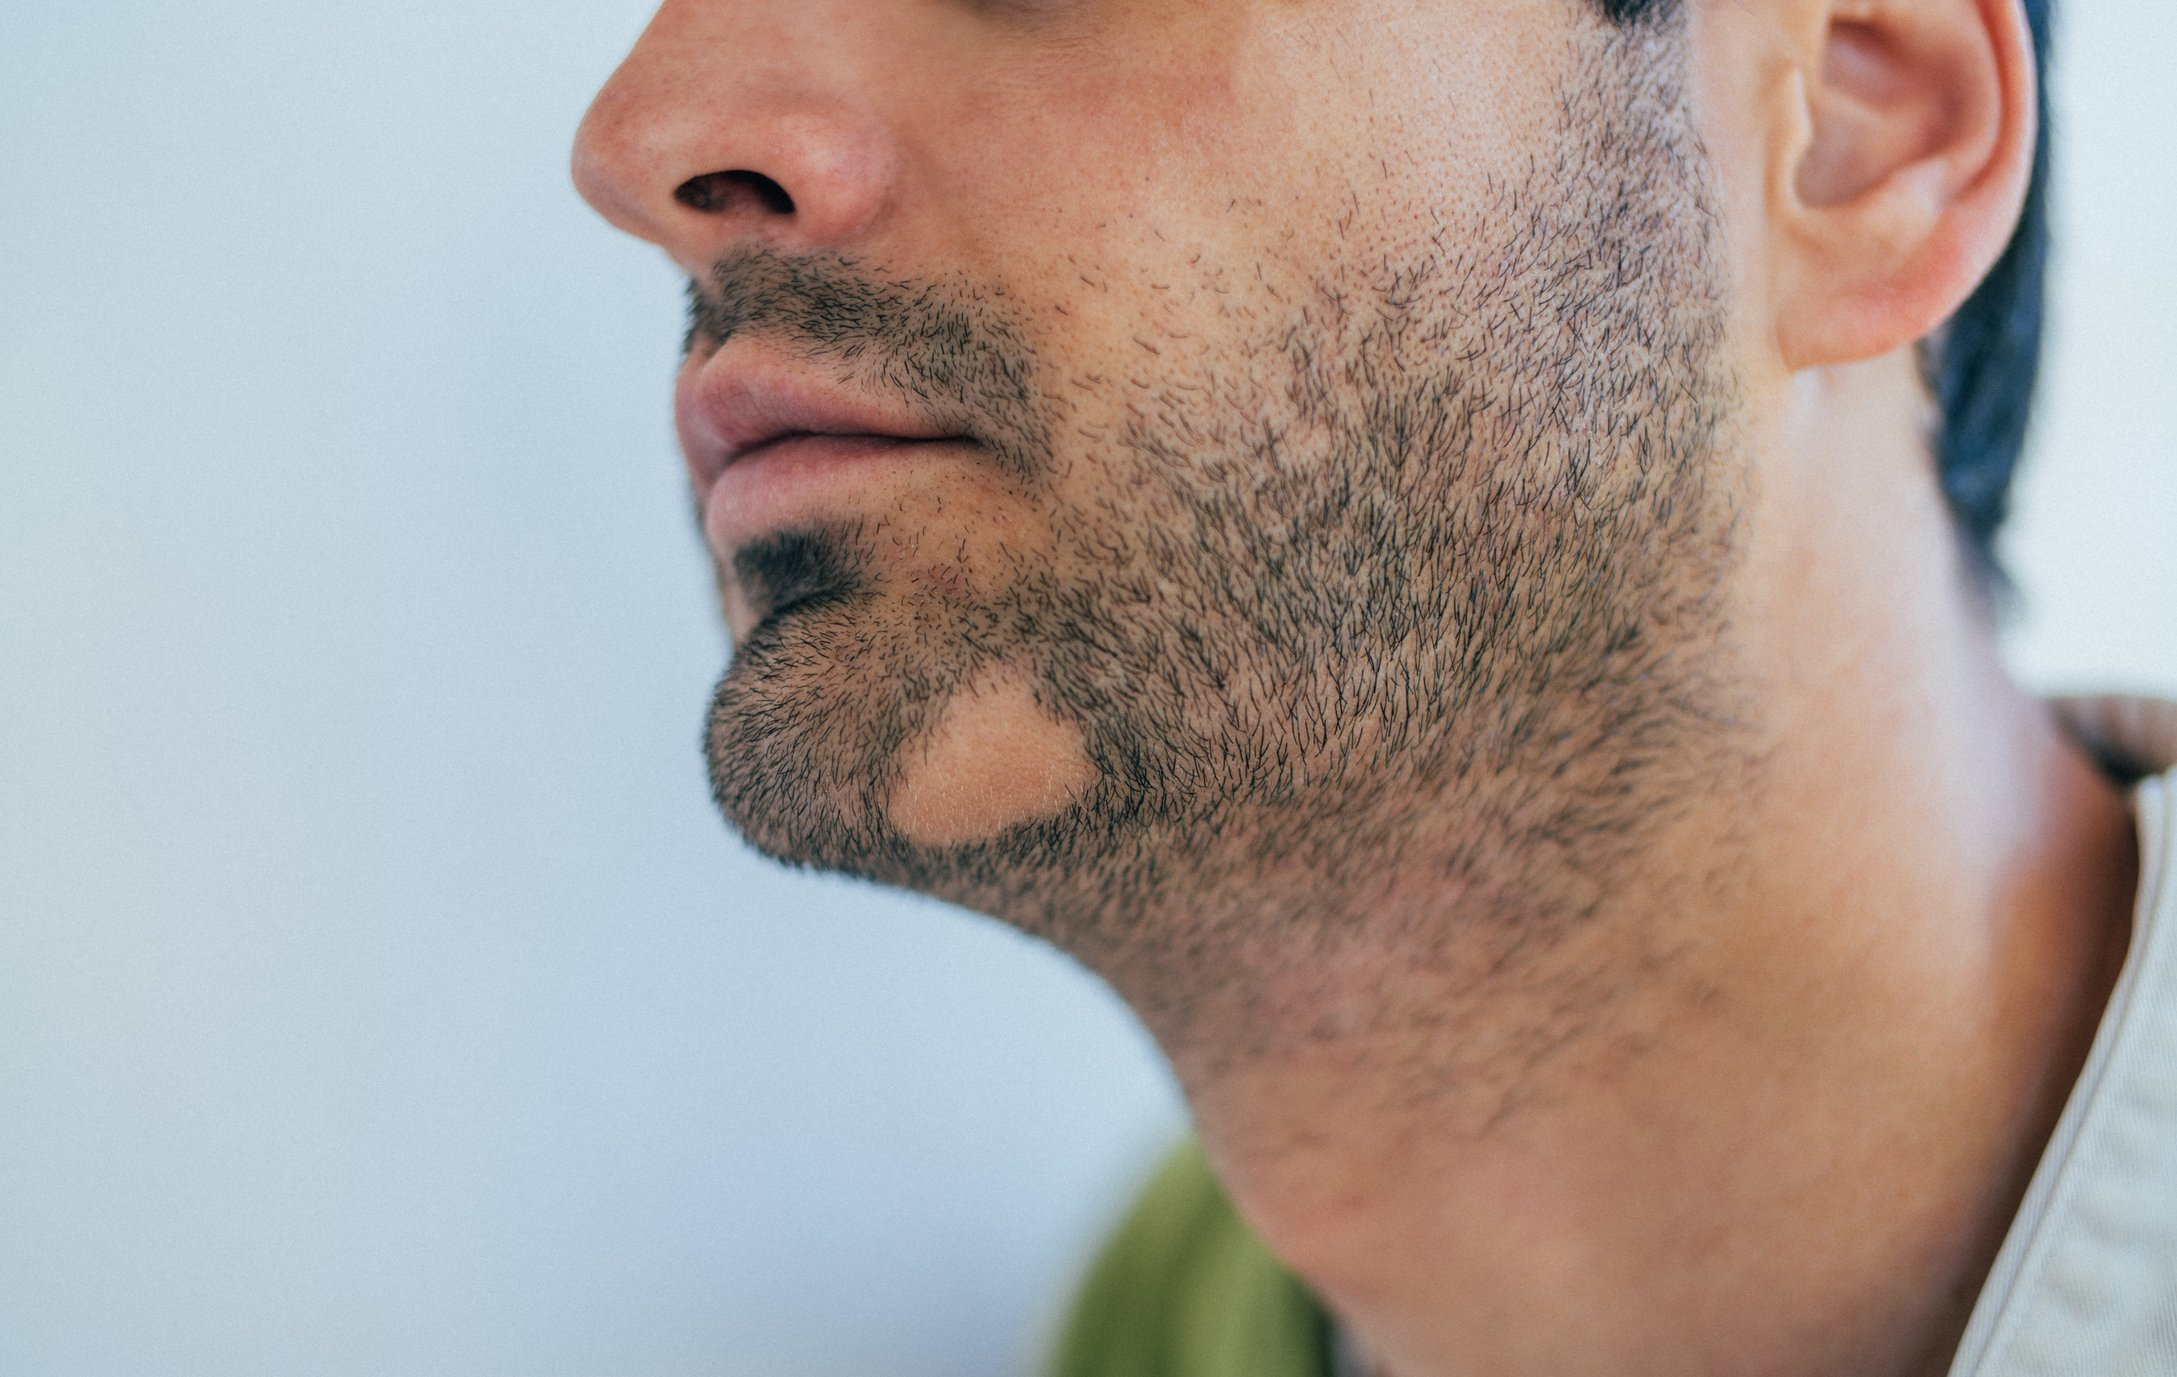 High levels of stress can cause alopecia areata in some people. (iStock Photo)